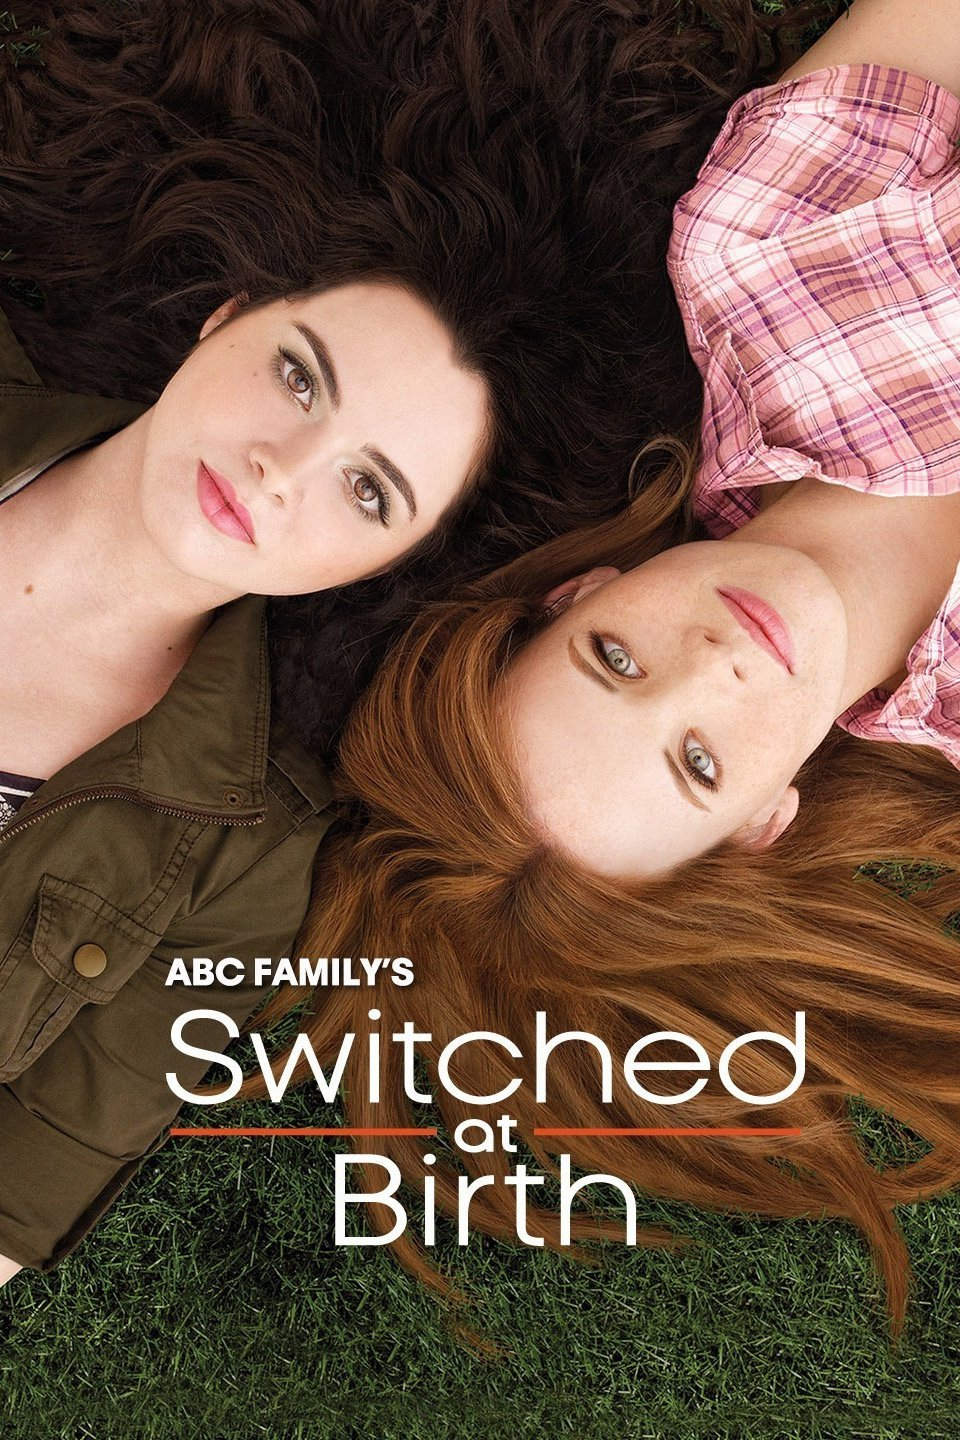 Switched at Birth Season 5 Download Episode 8 HDTV Micromkv